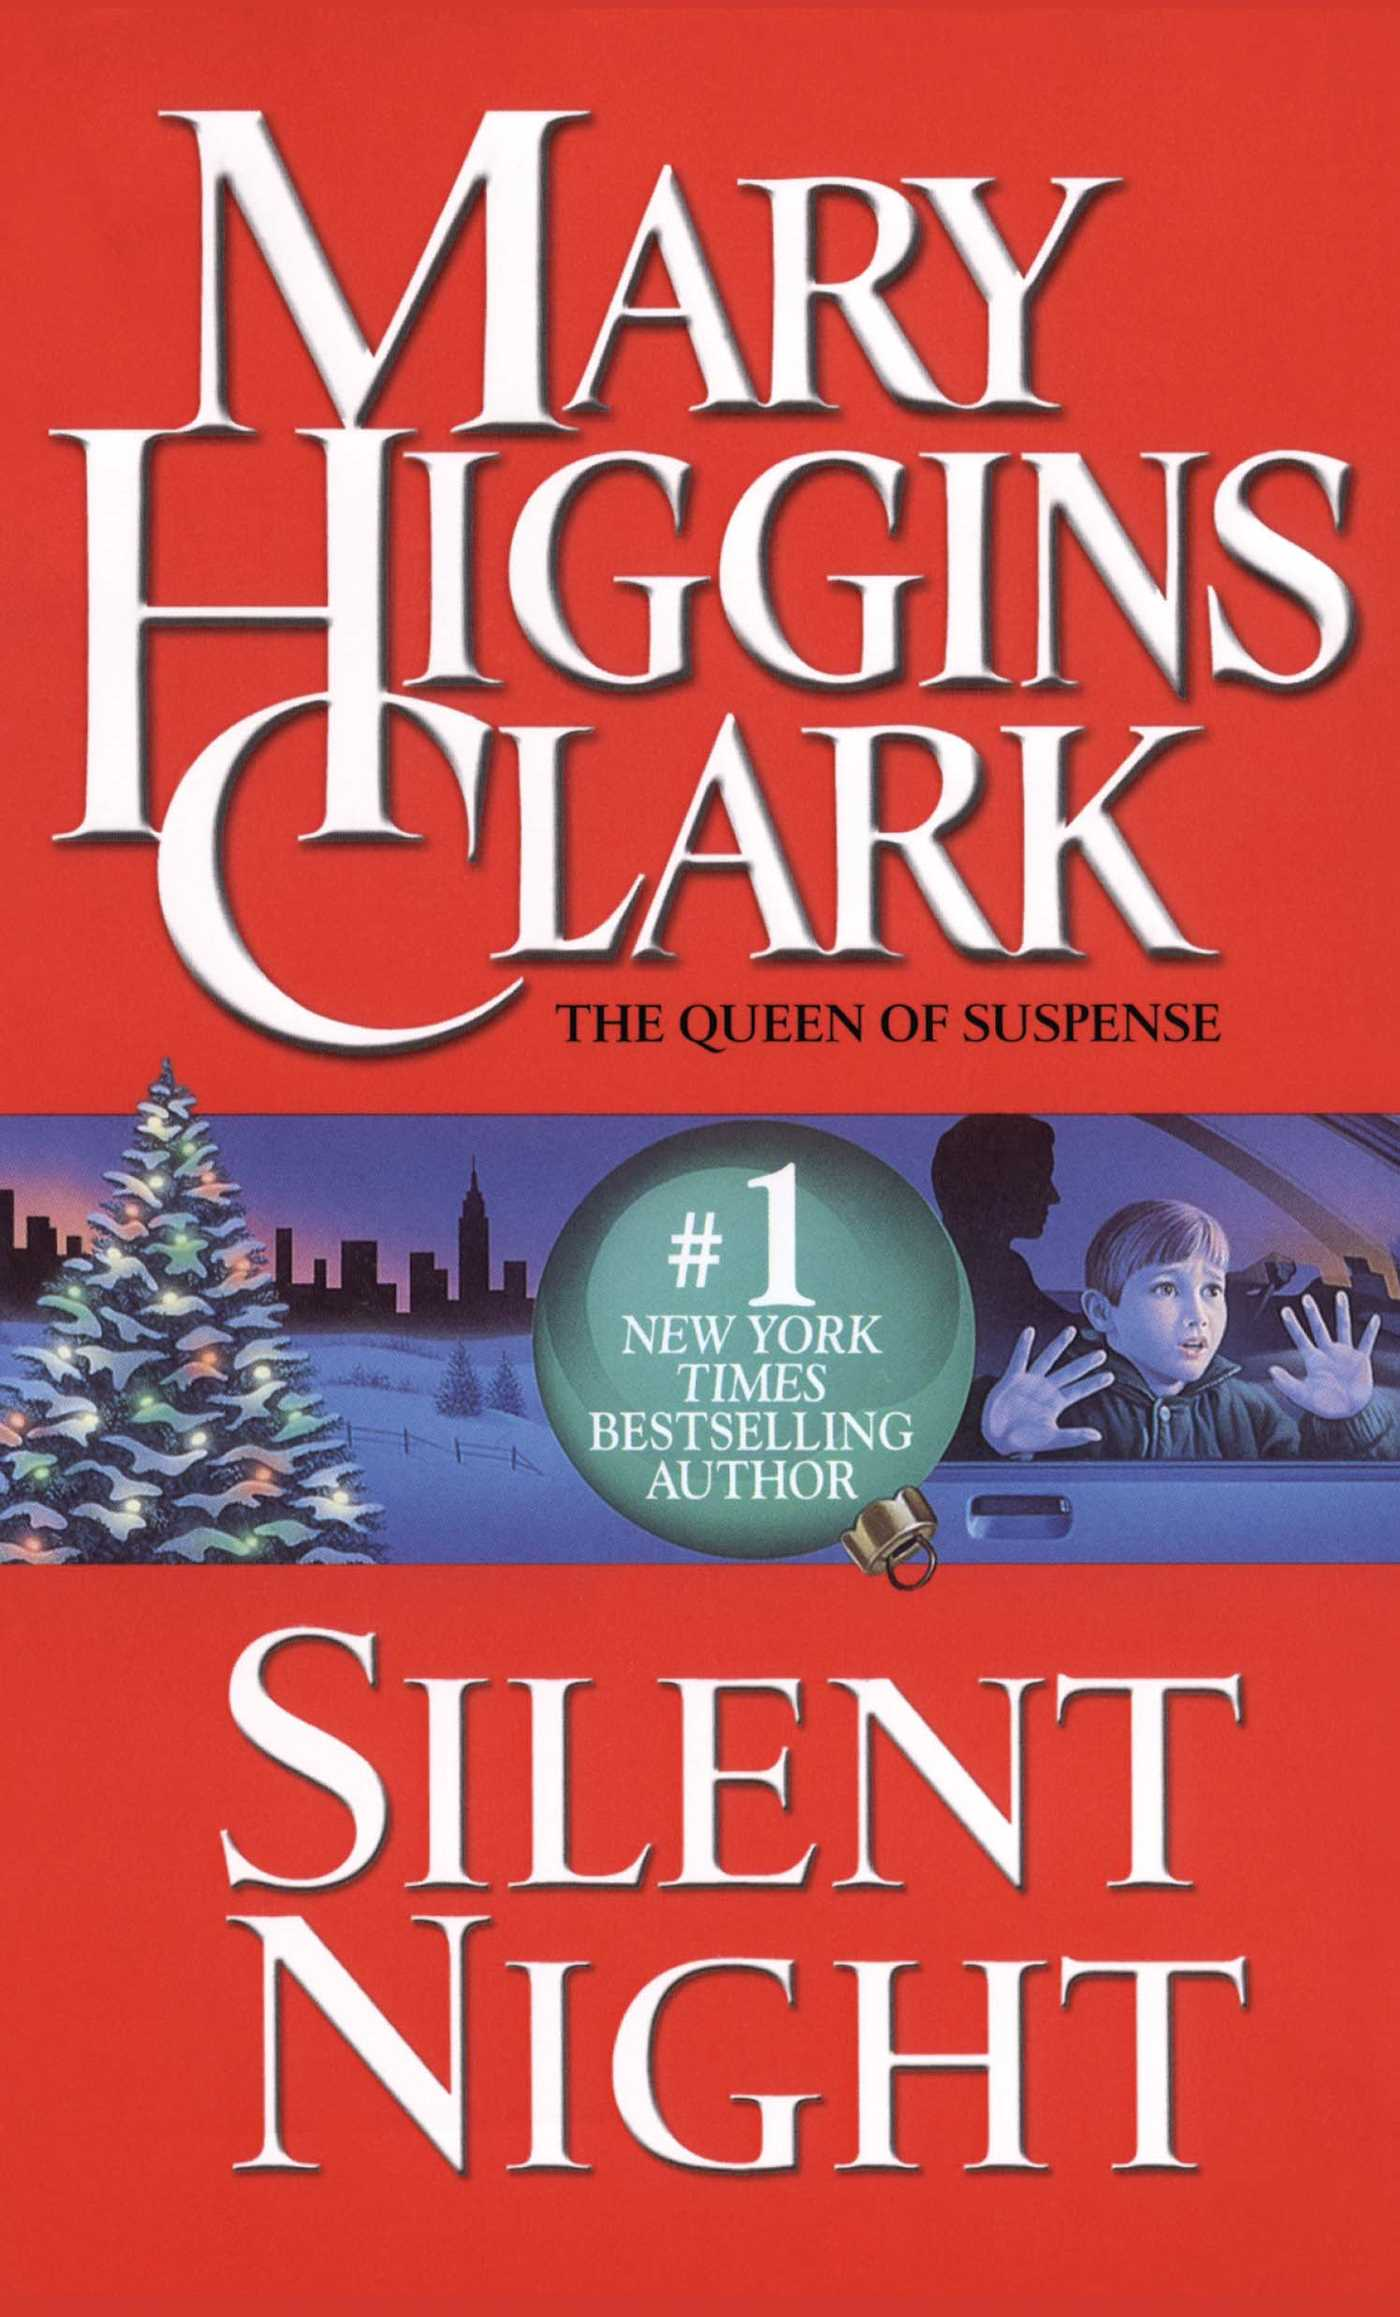 Silent night 9780743206273 hr